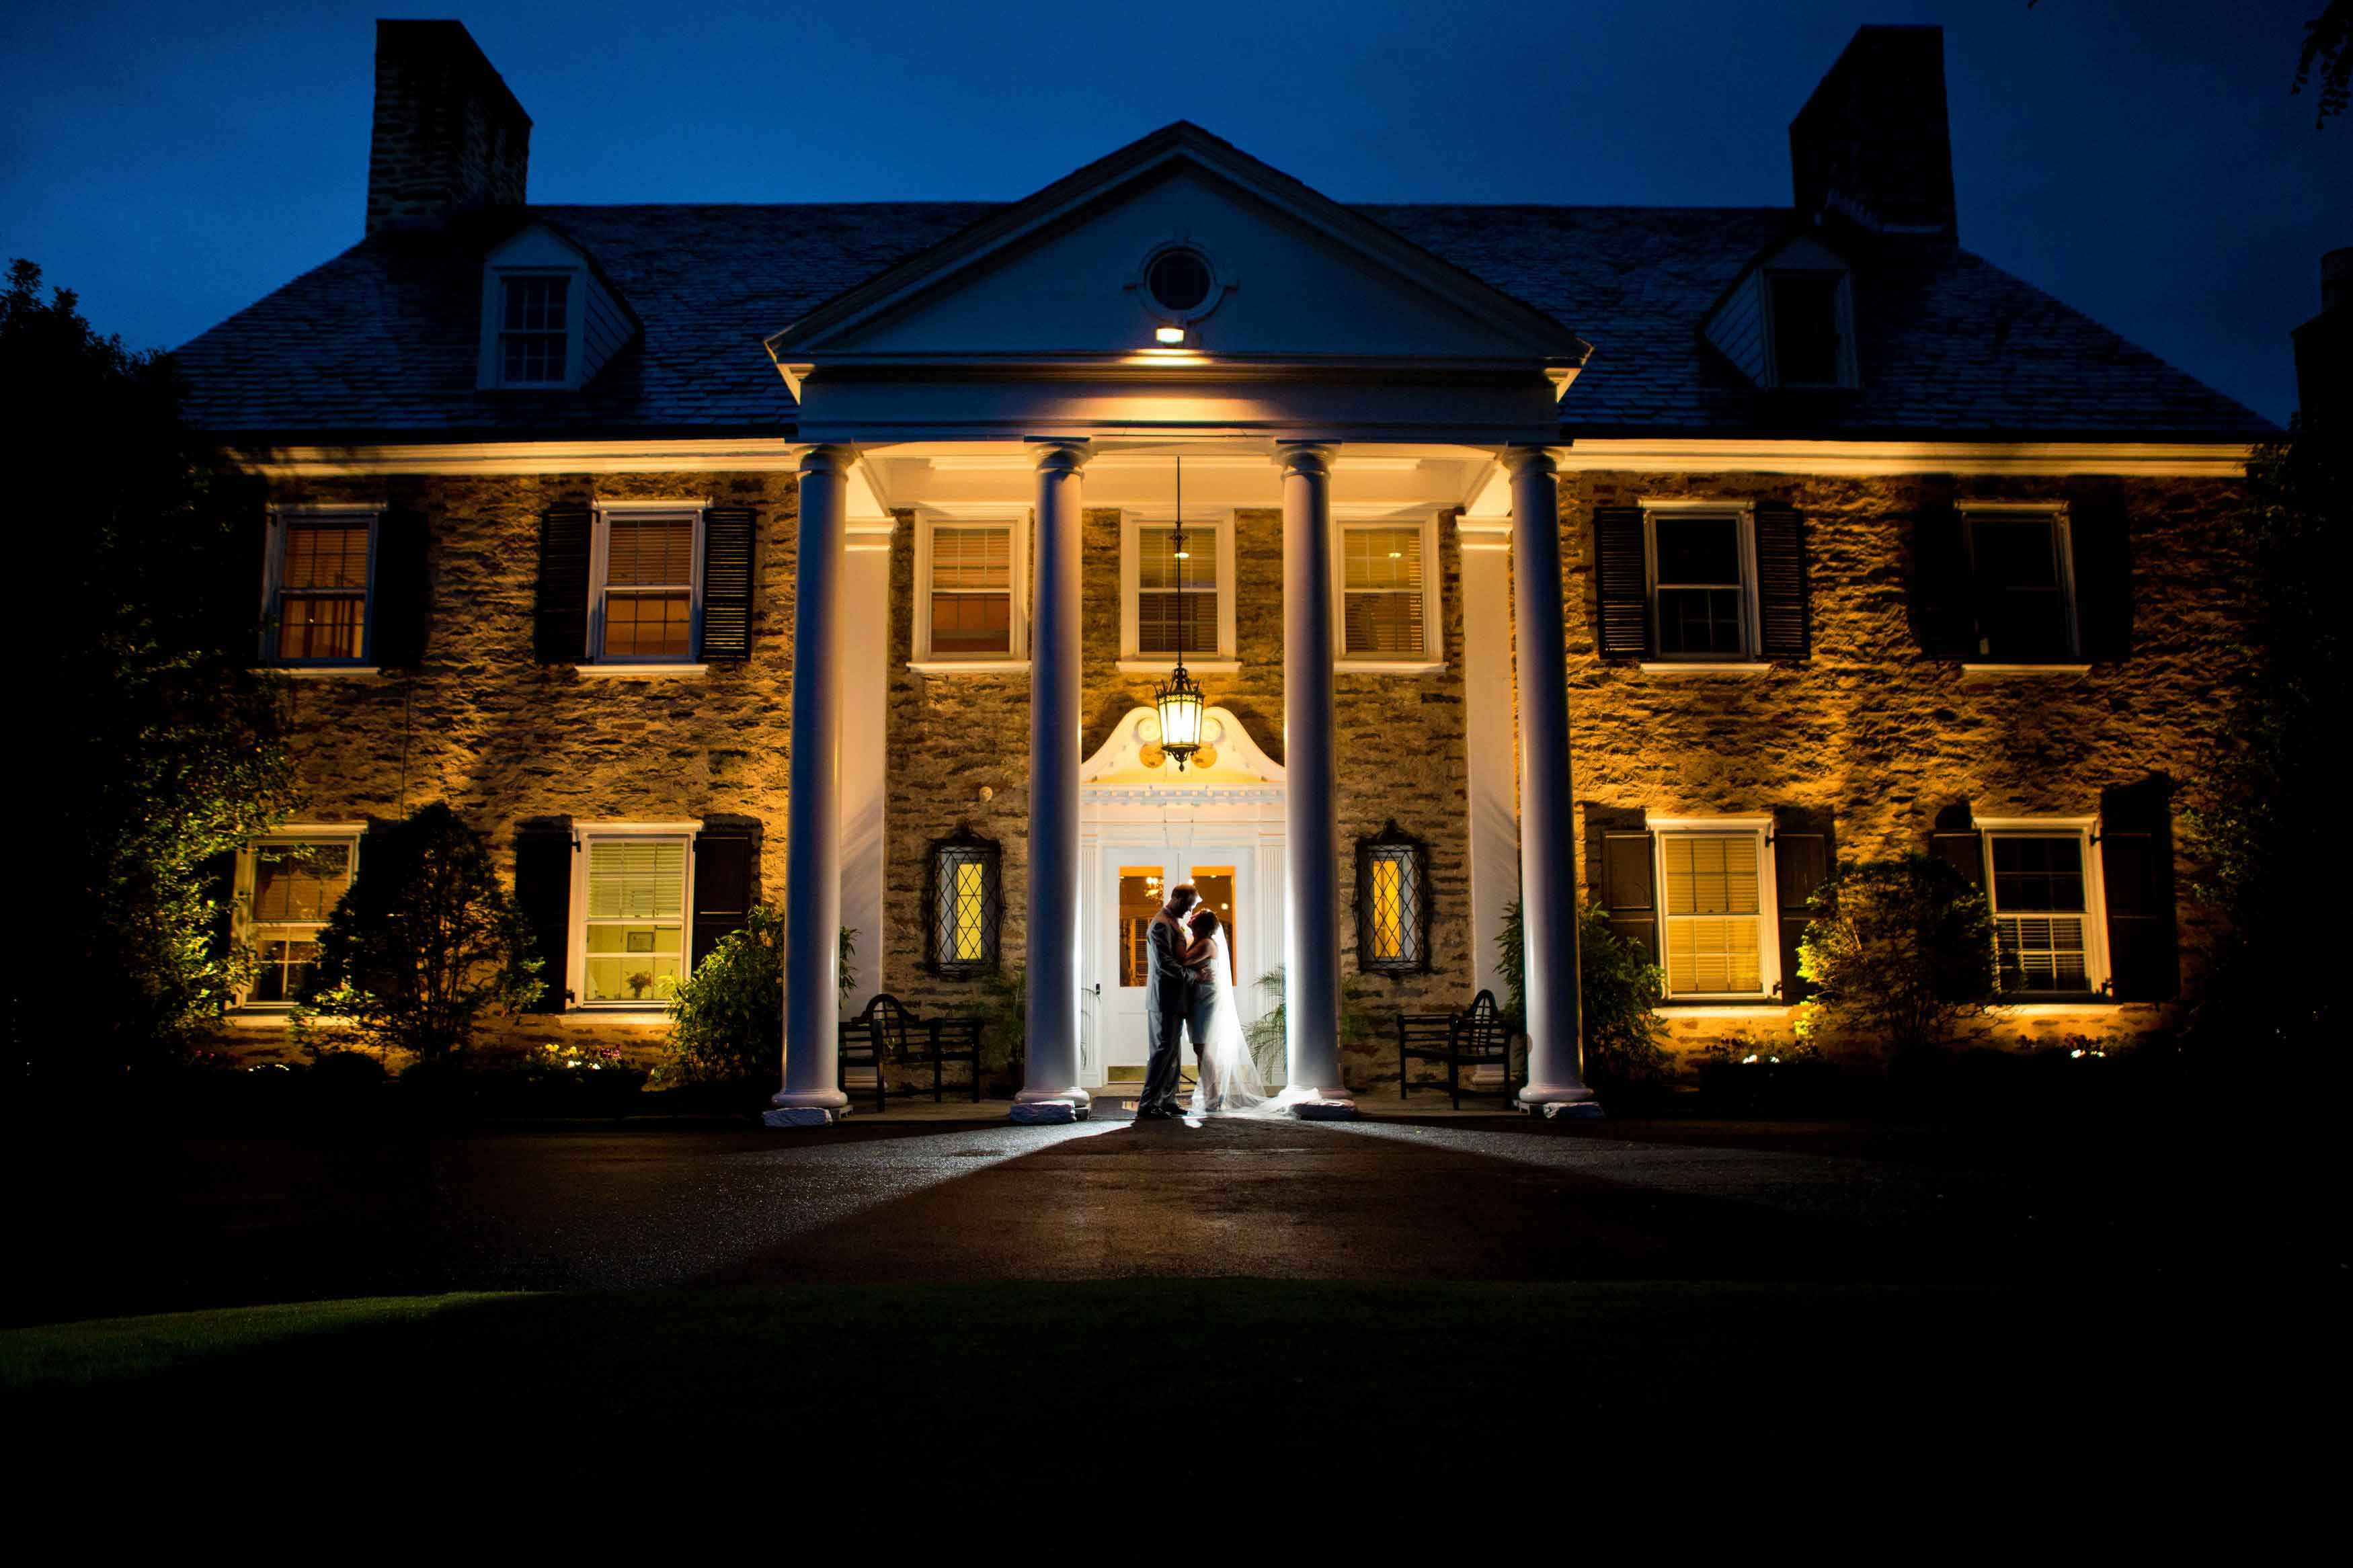 Wedding Limo Service In Huntingdon Valley Pa